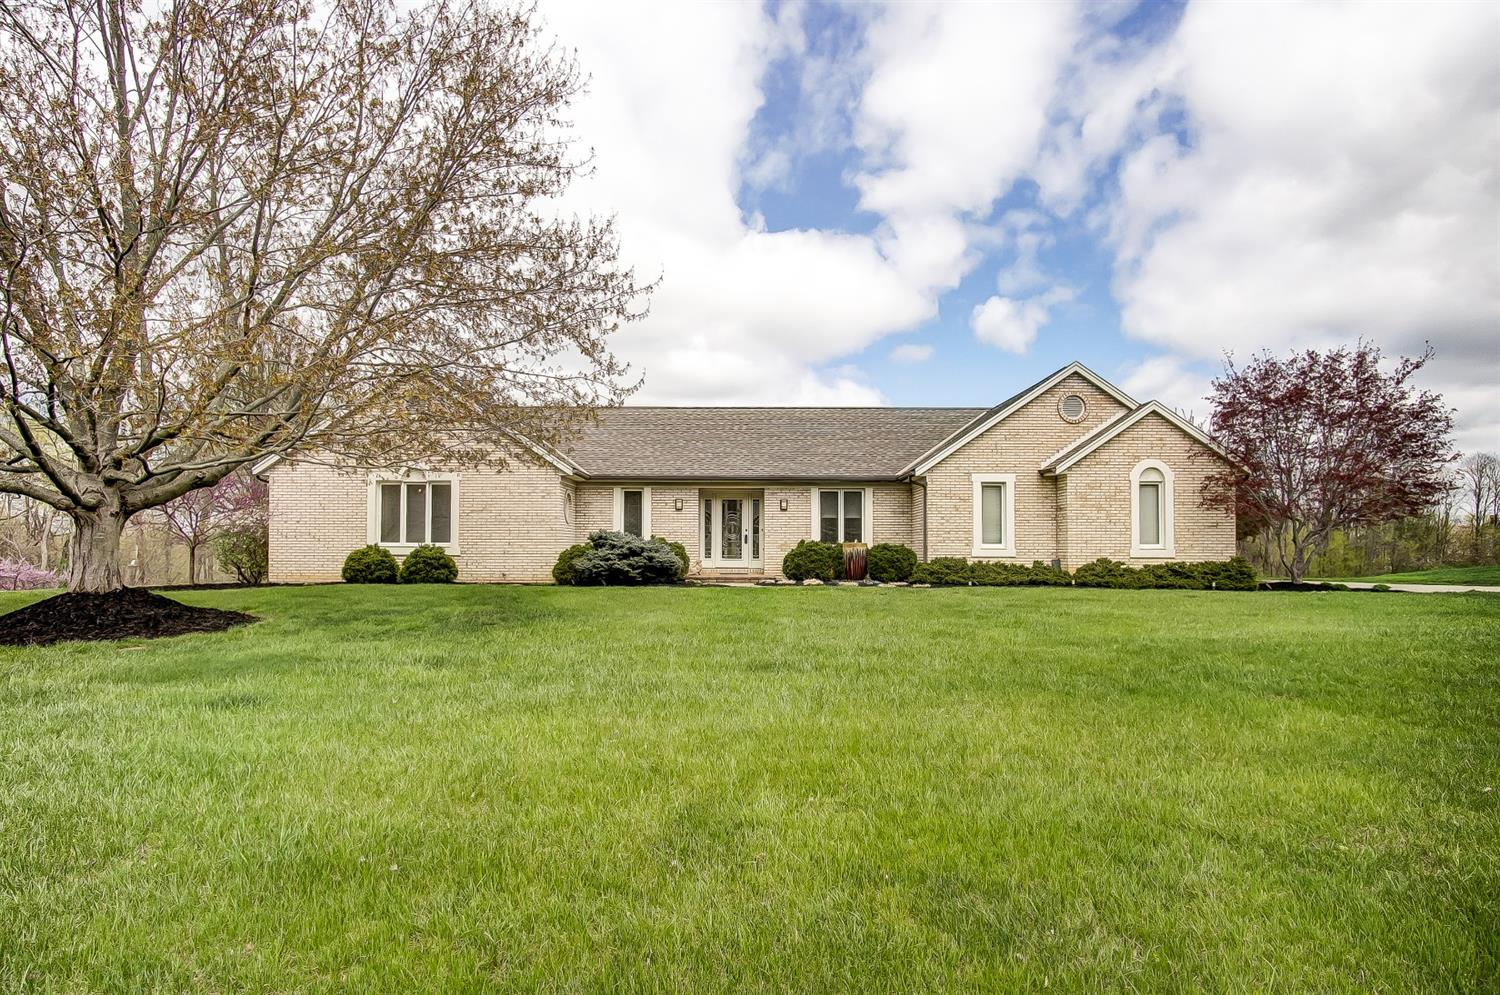 11872 Miamitrail Ct Colerain Twp.West, OH